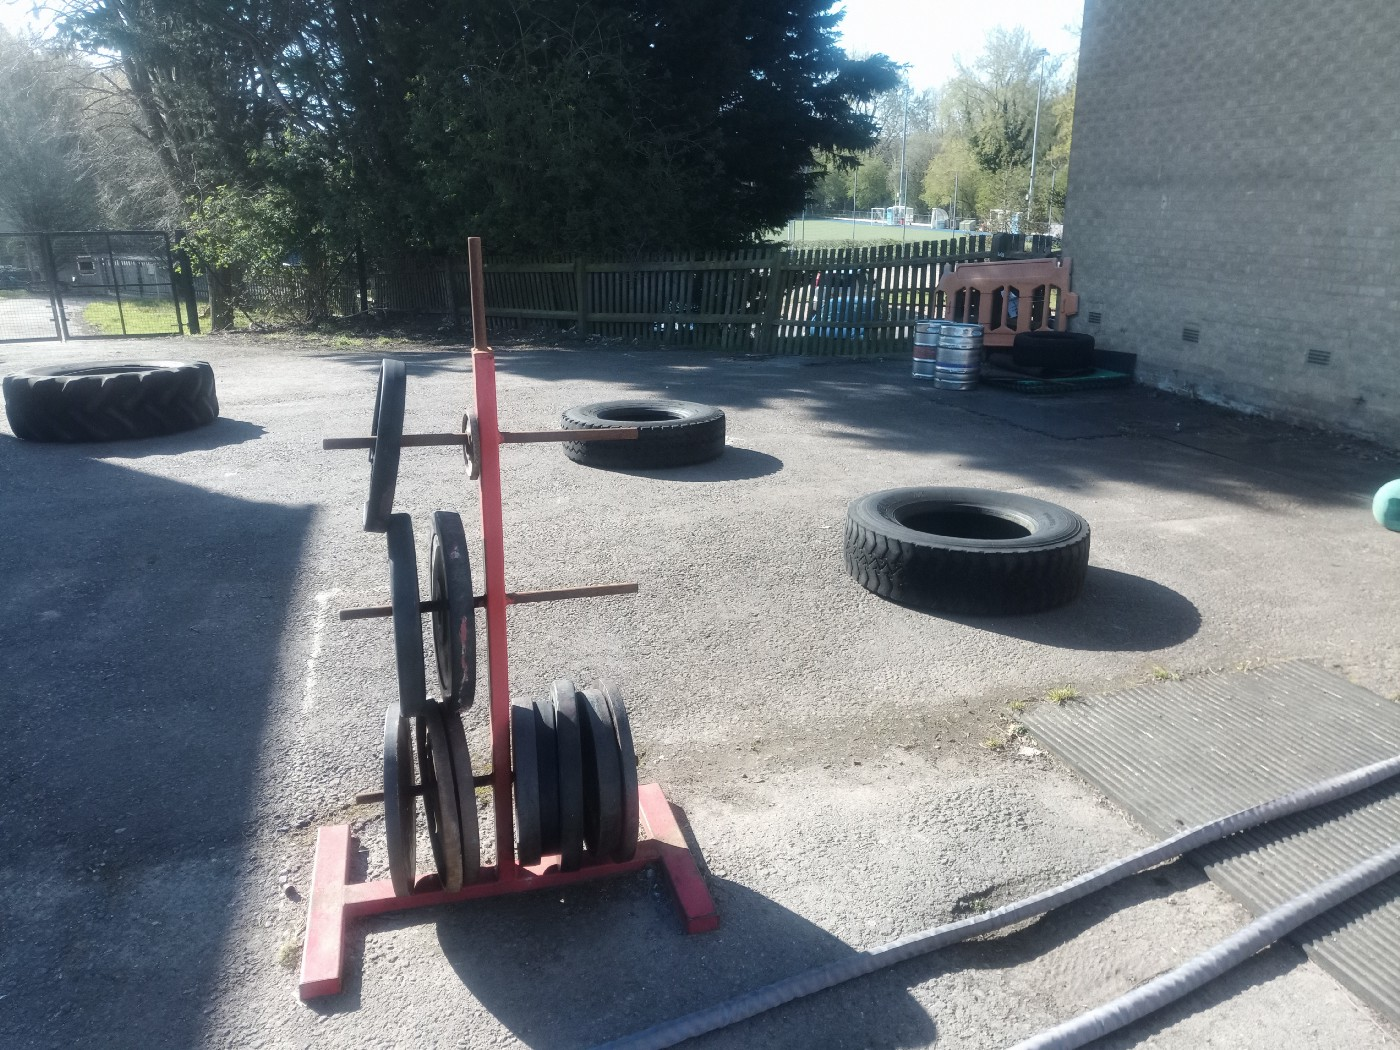 a rack with plates of metal barbell weights. In the background large heavy tyres